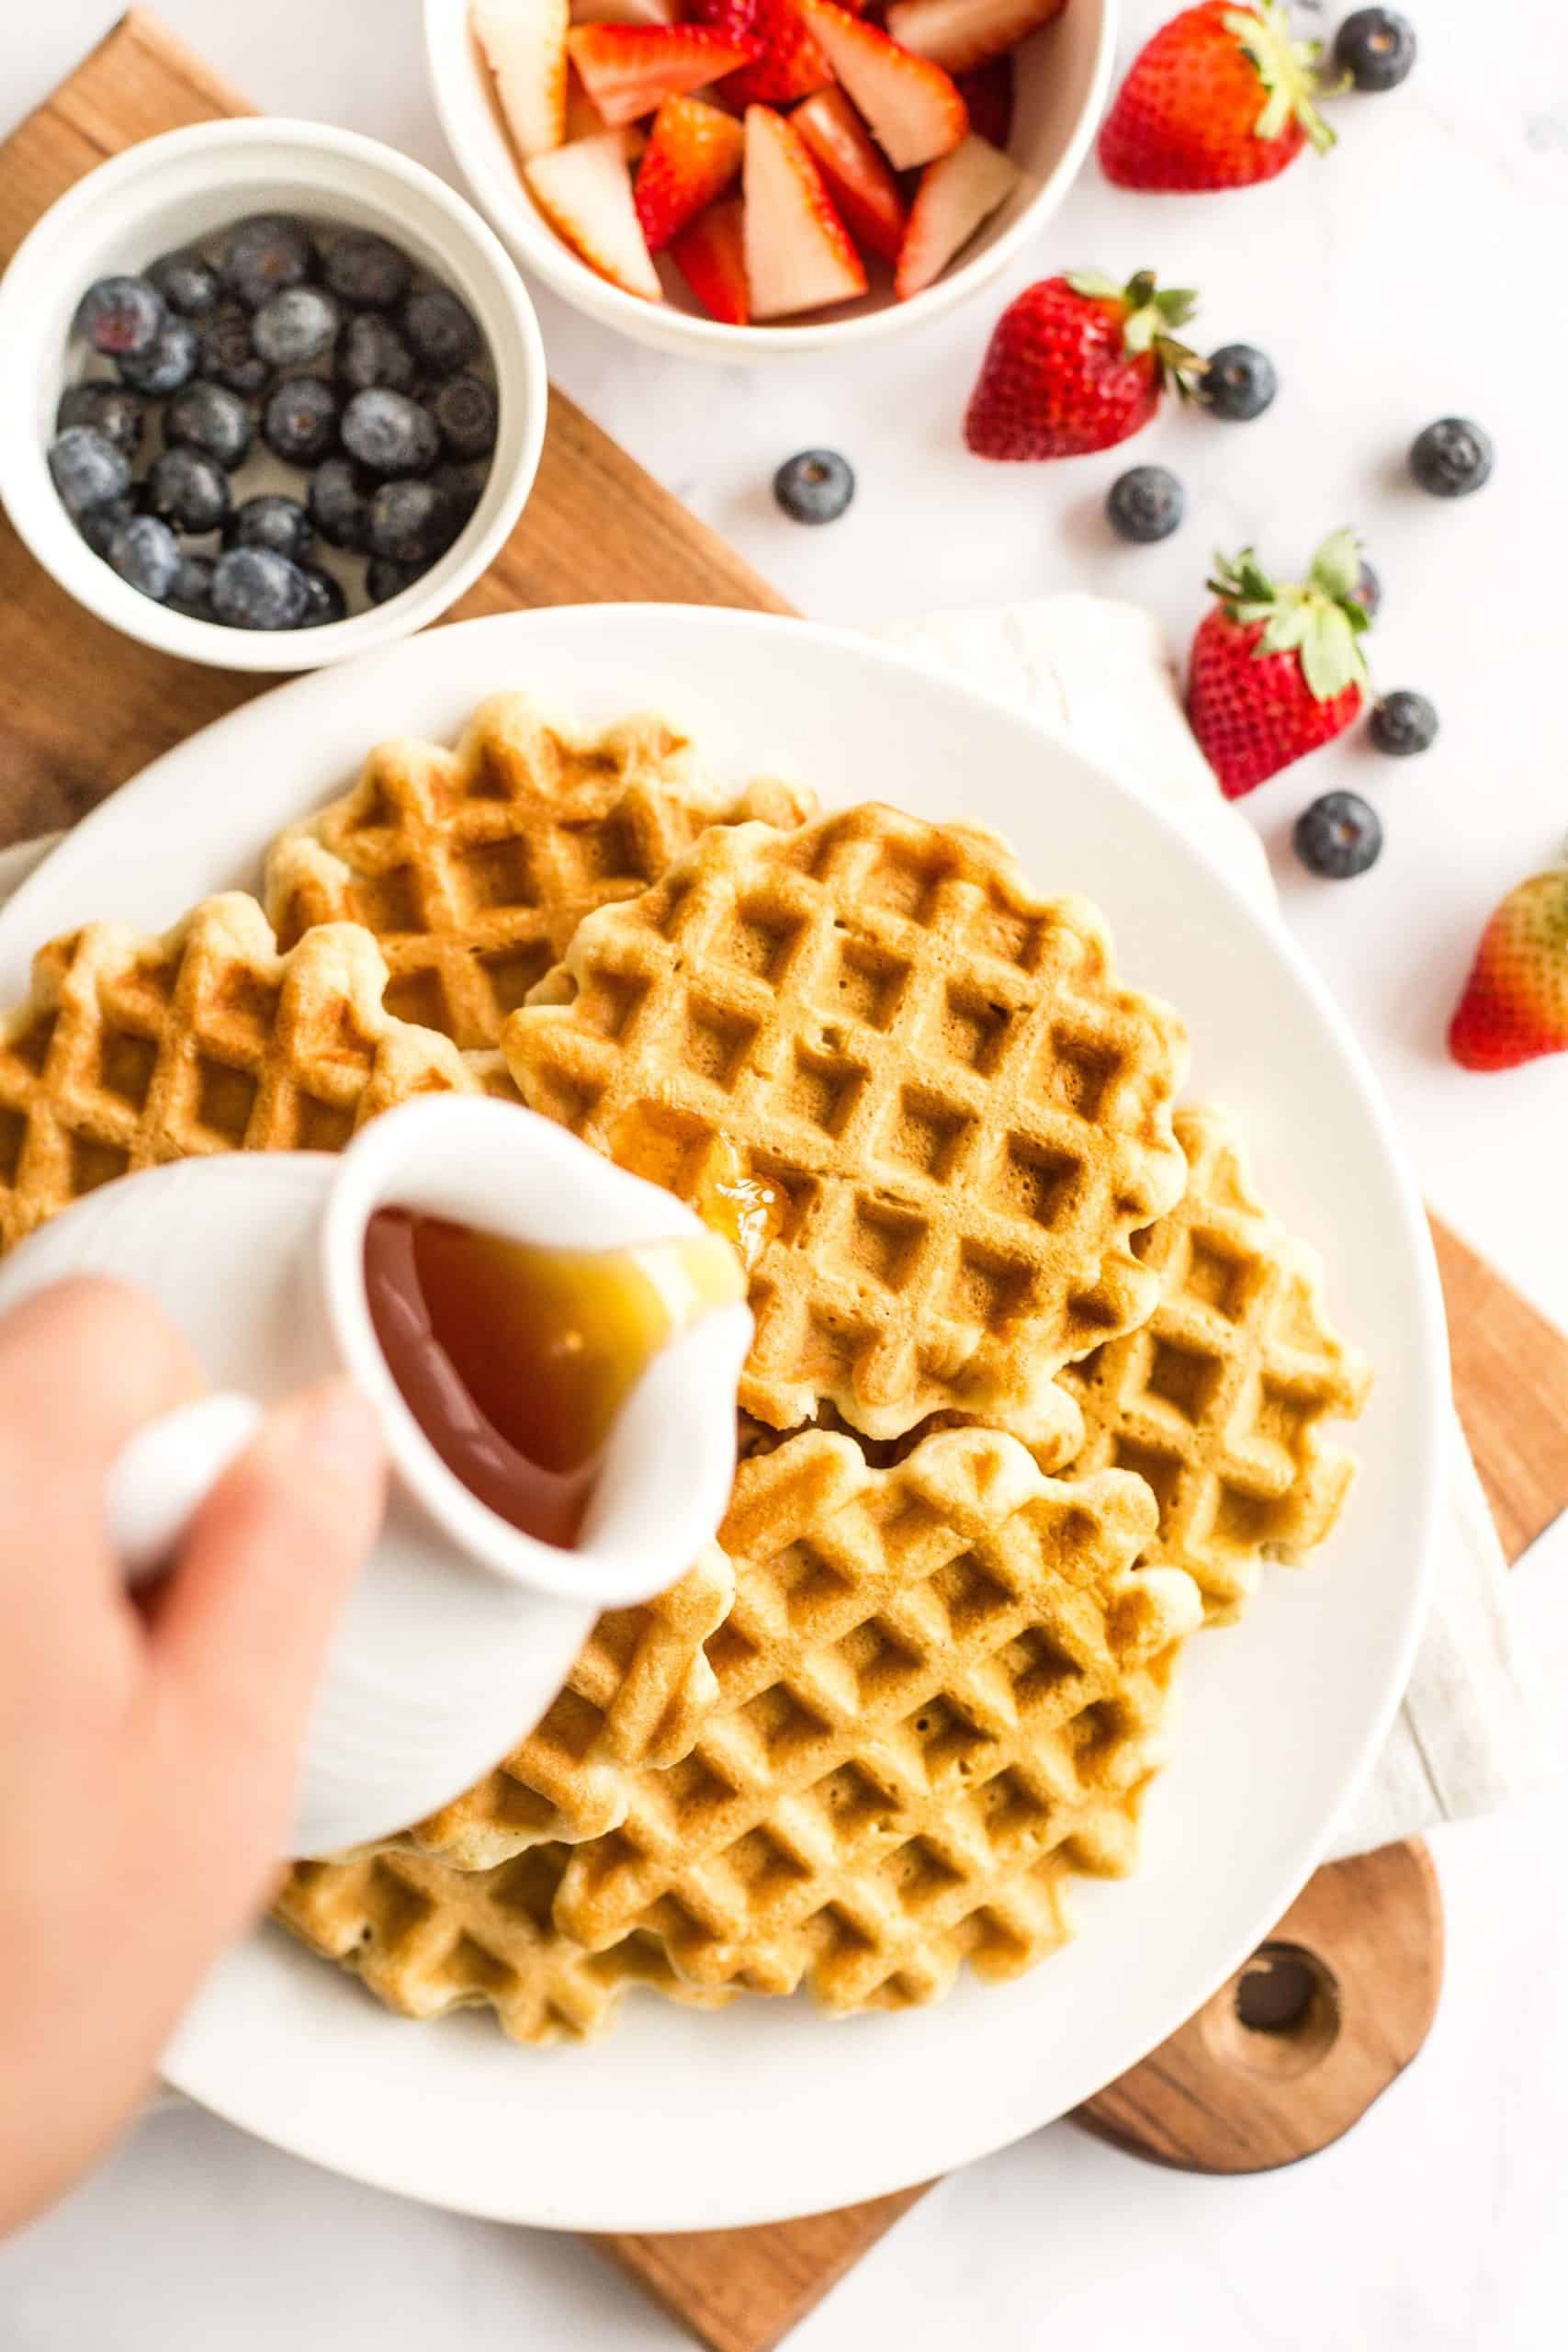 Hand pouring maple syrup over a plate of gluten-free waffles and bowls or fresh berries at the side.